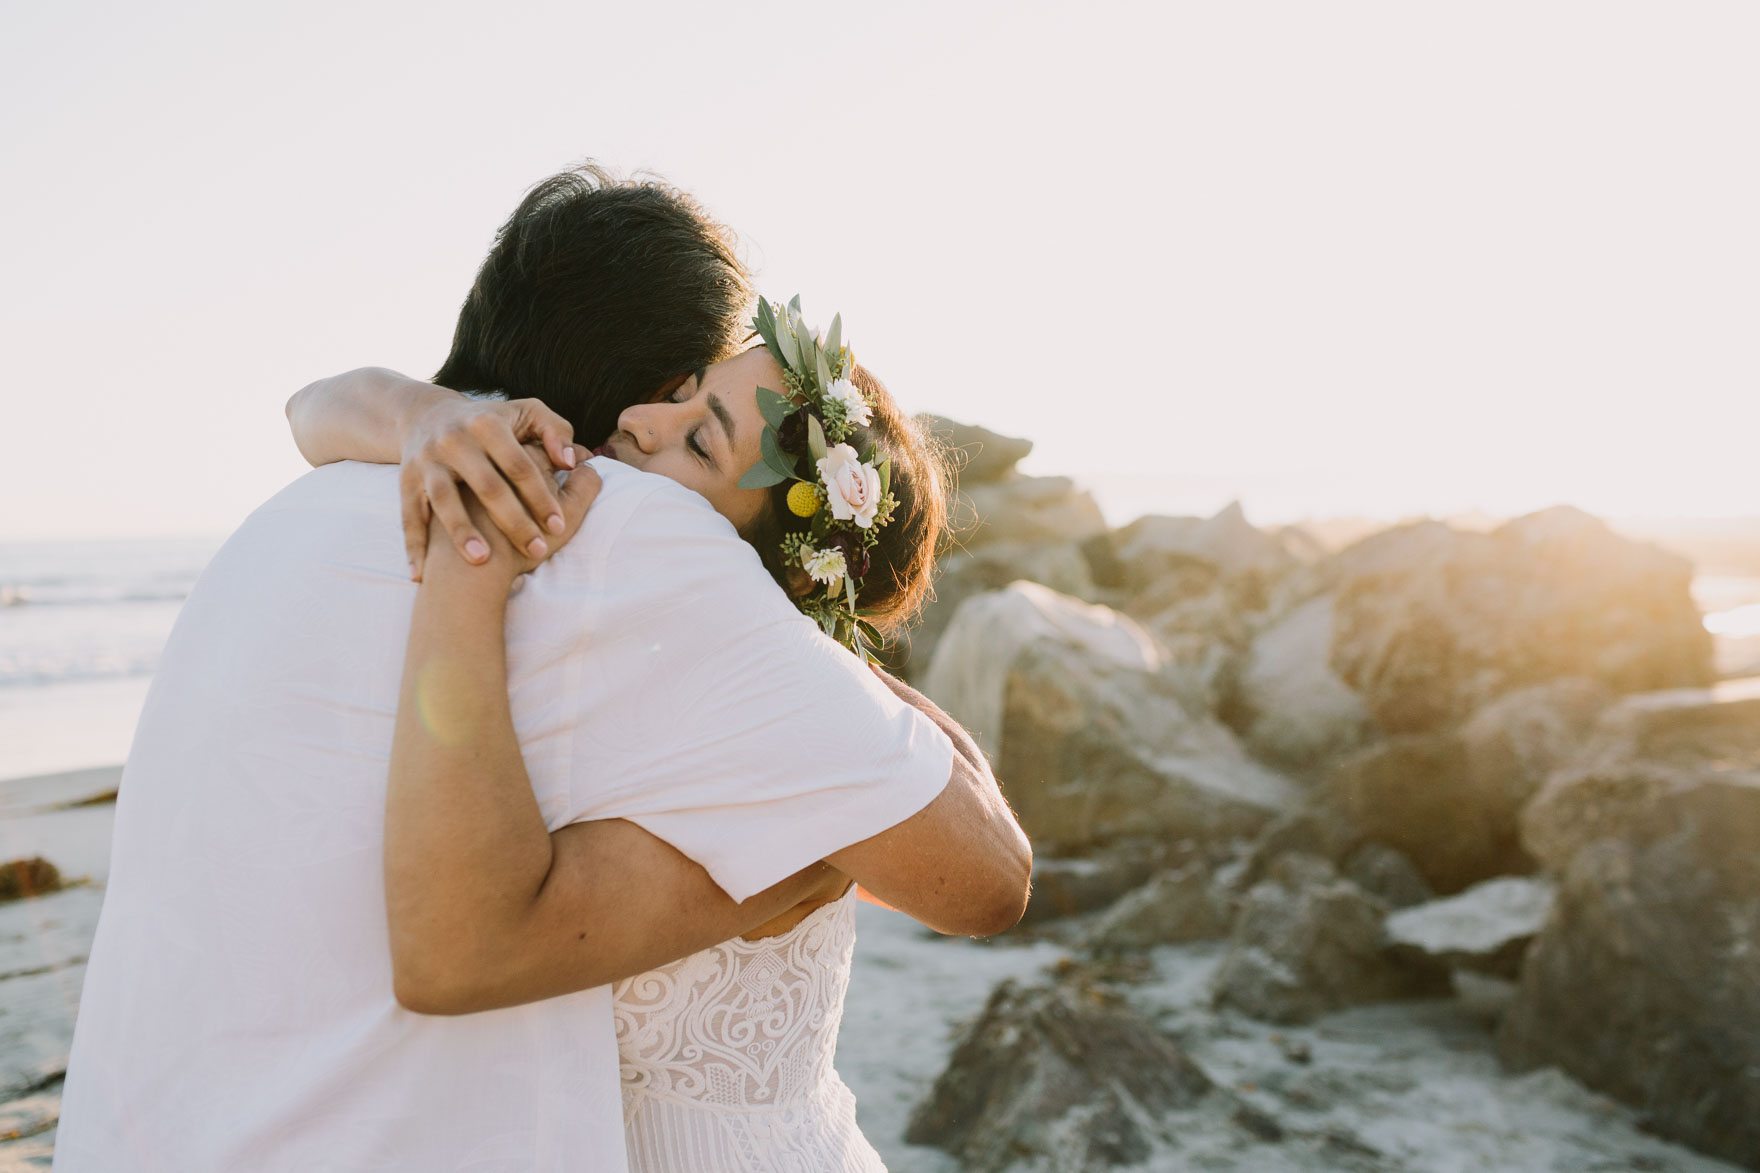 A Ceremony by the Sea – Photo by Let's Frolic Together